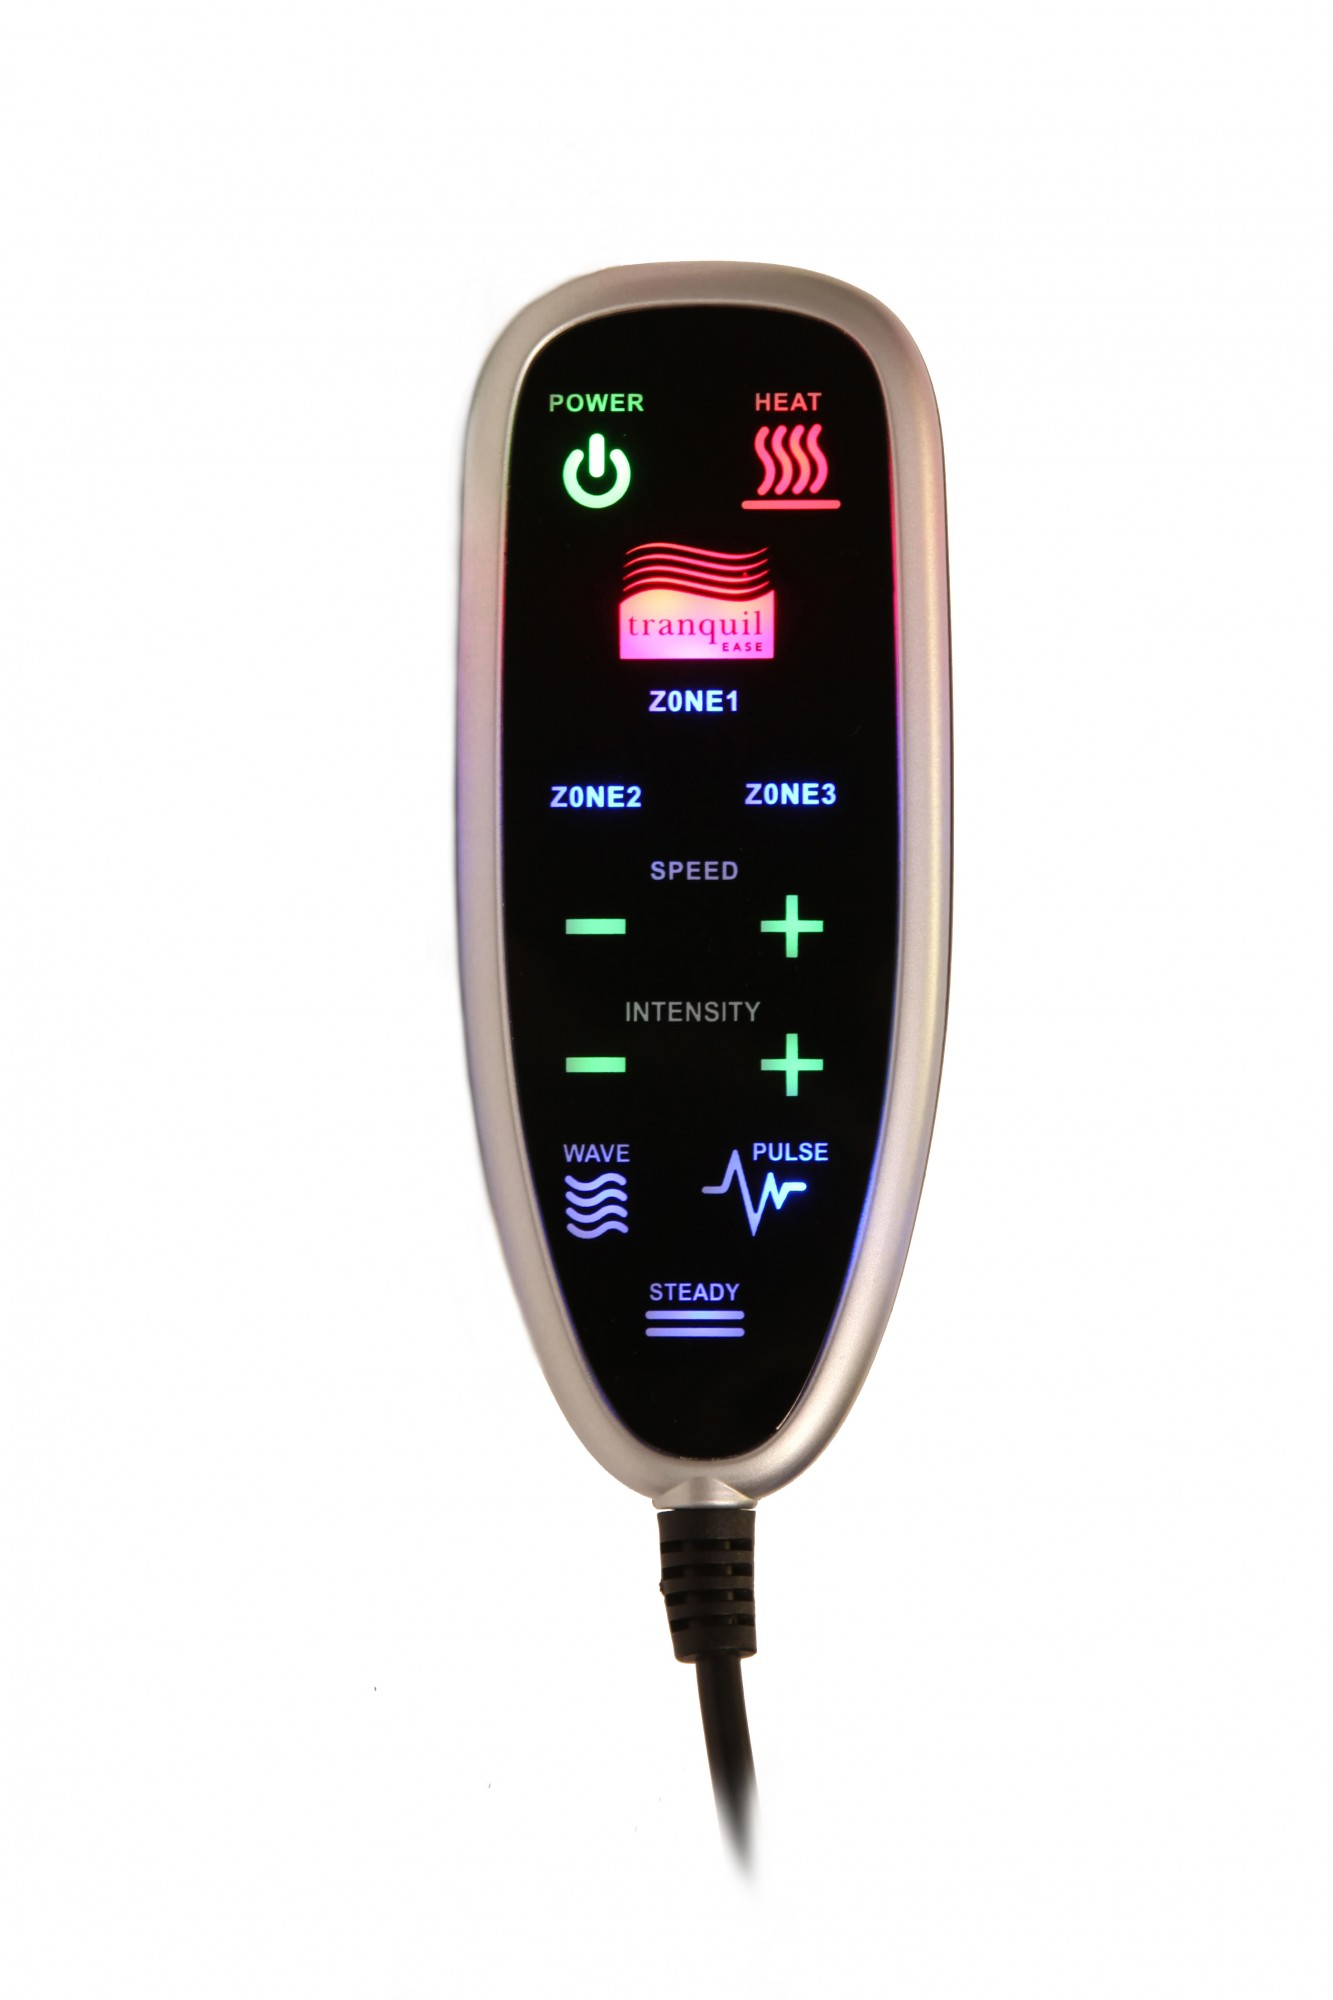 10 - Motor Touch Sensor Massage & Heat System